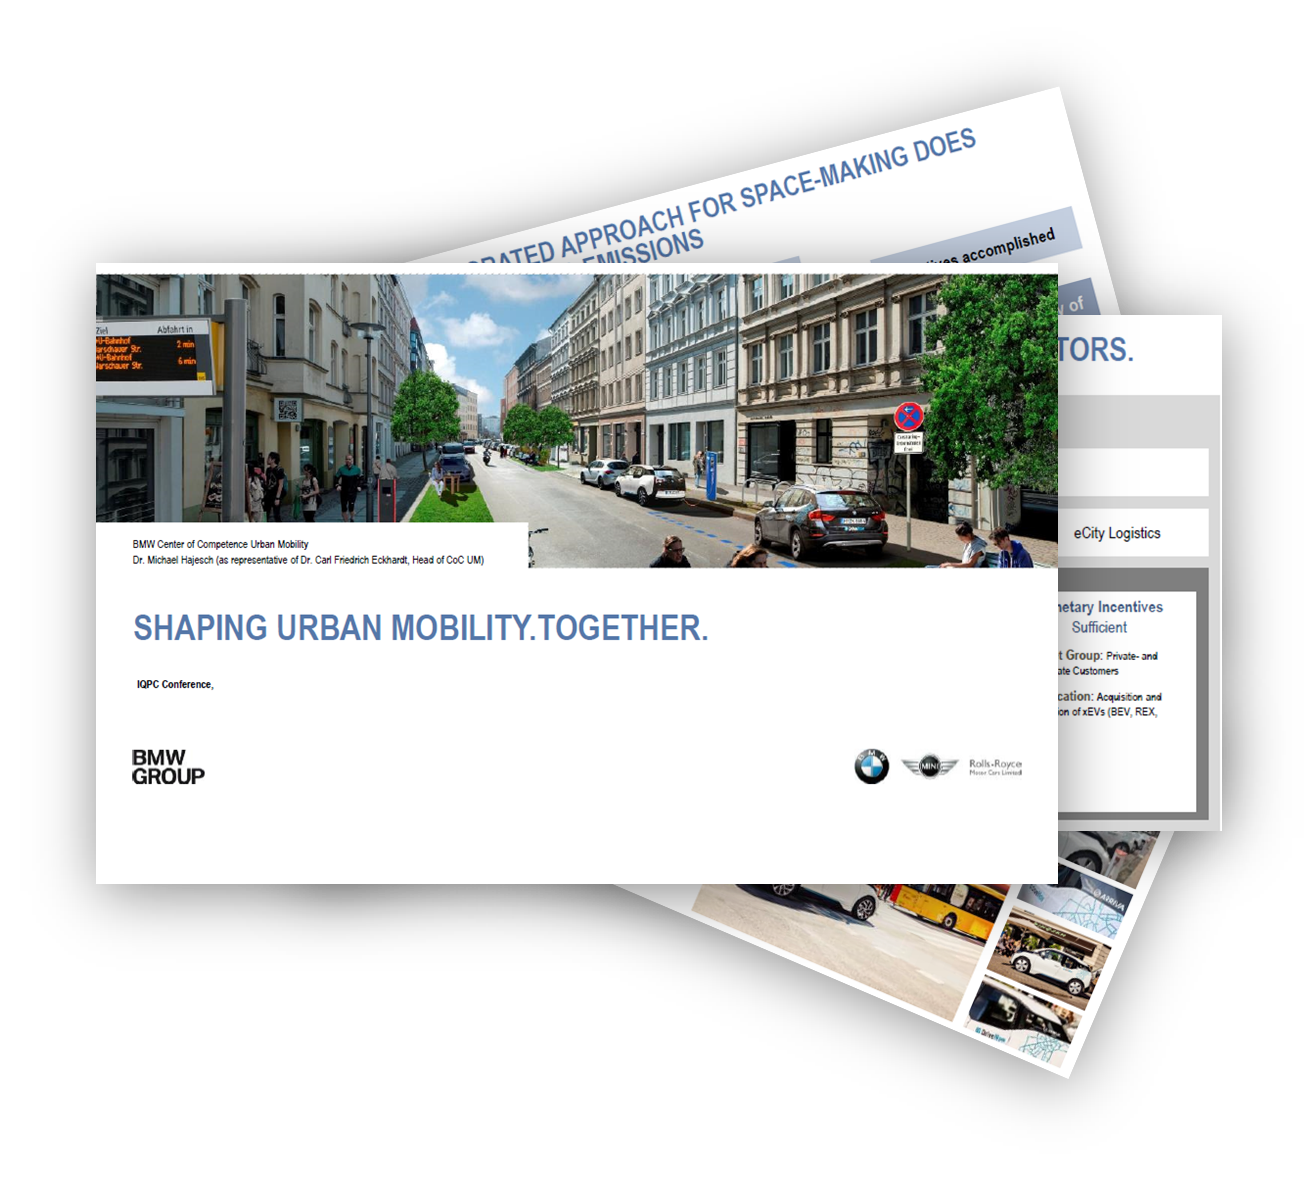 BMW discuss Shaping Urban Mobility